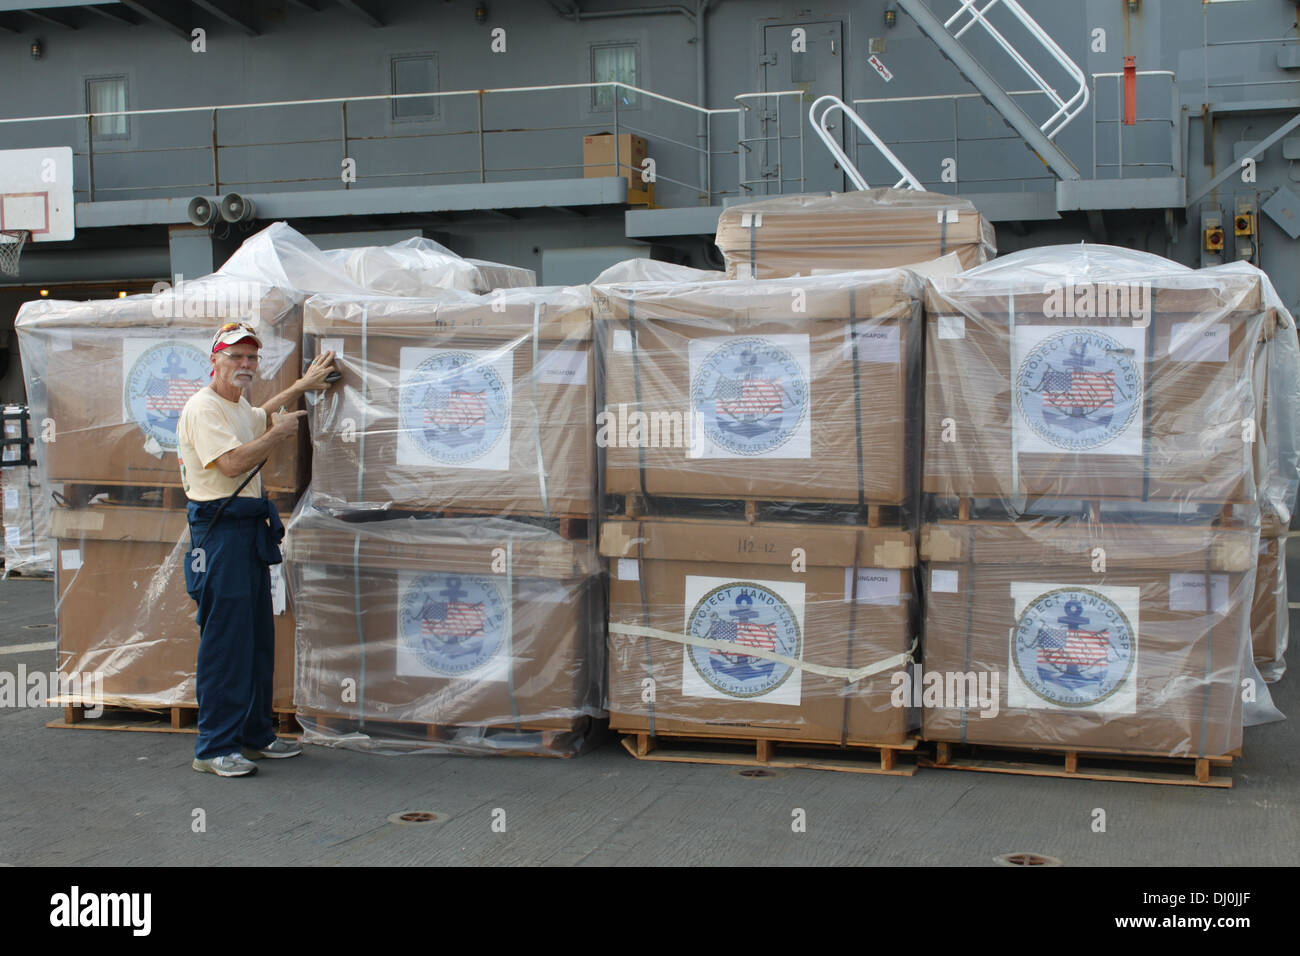 Civil service mariner Ron McCann, a supply officer assigned to the fleet replenishment oiler USNS Walter S. Diehl (T-AO 193), inspects cargo containing humanitarian supplies on the ship's flight deck at Sembawang Wharves in Singapore, Nov. 15, 2013, as pa - Stock Image